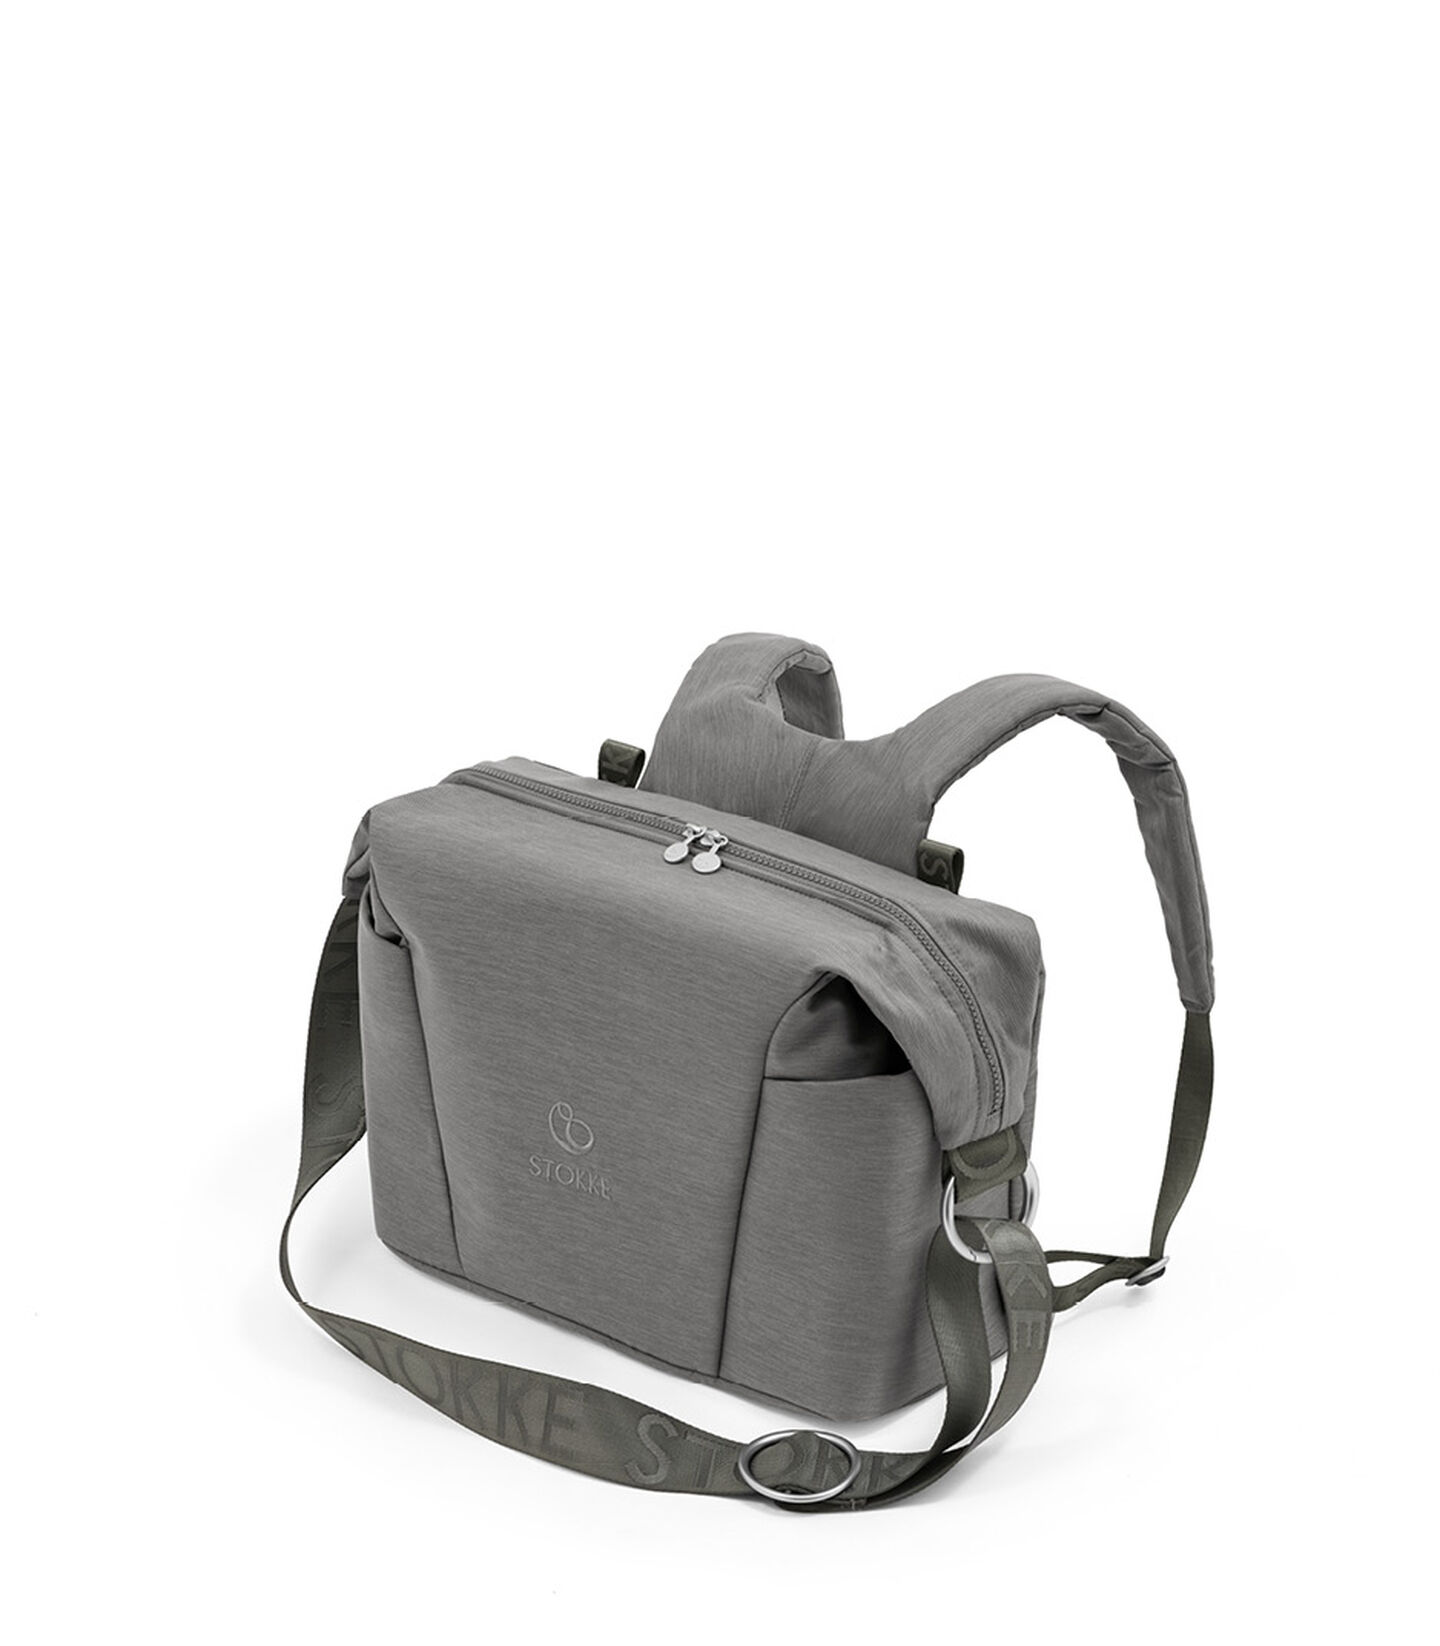 Stokke® Xplory® X Changing Bag Modern Grey. Accessories. view 2